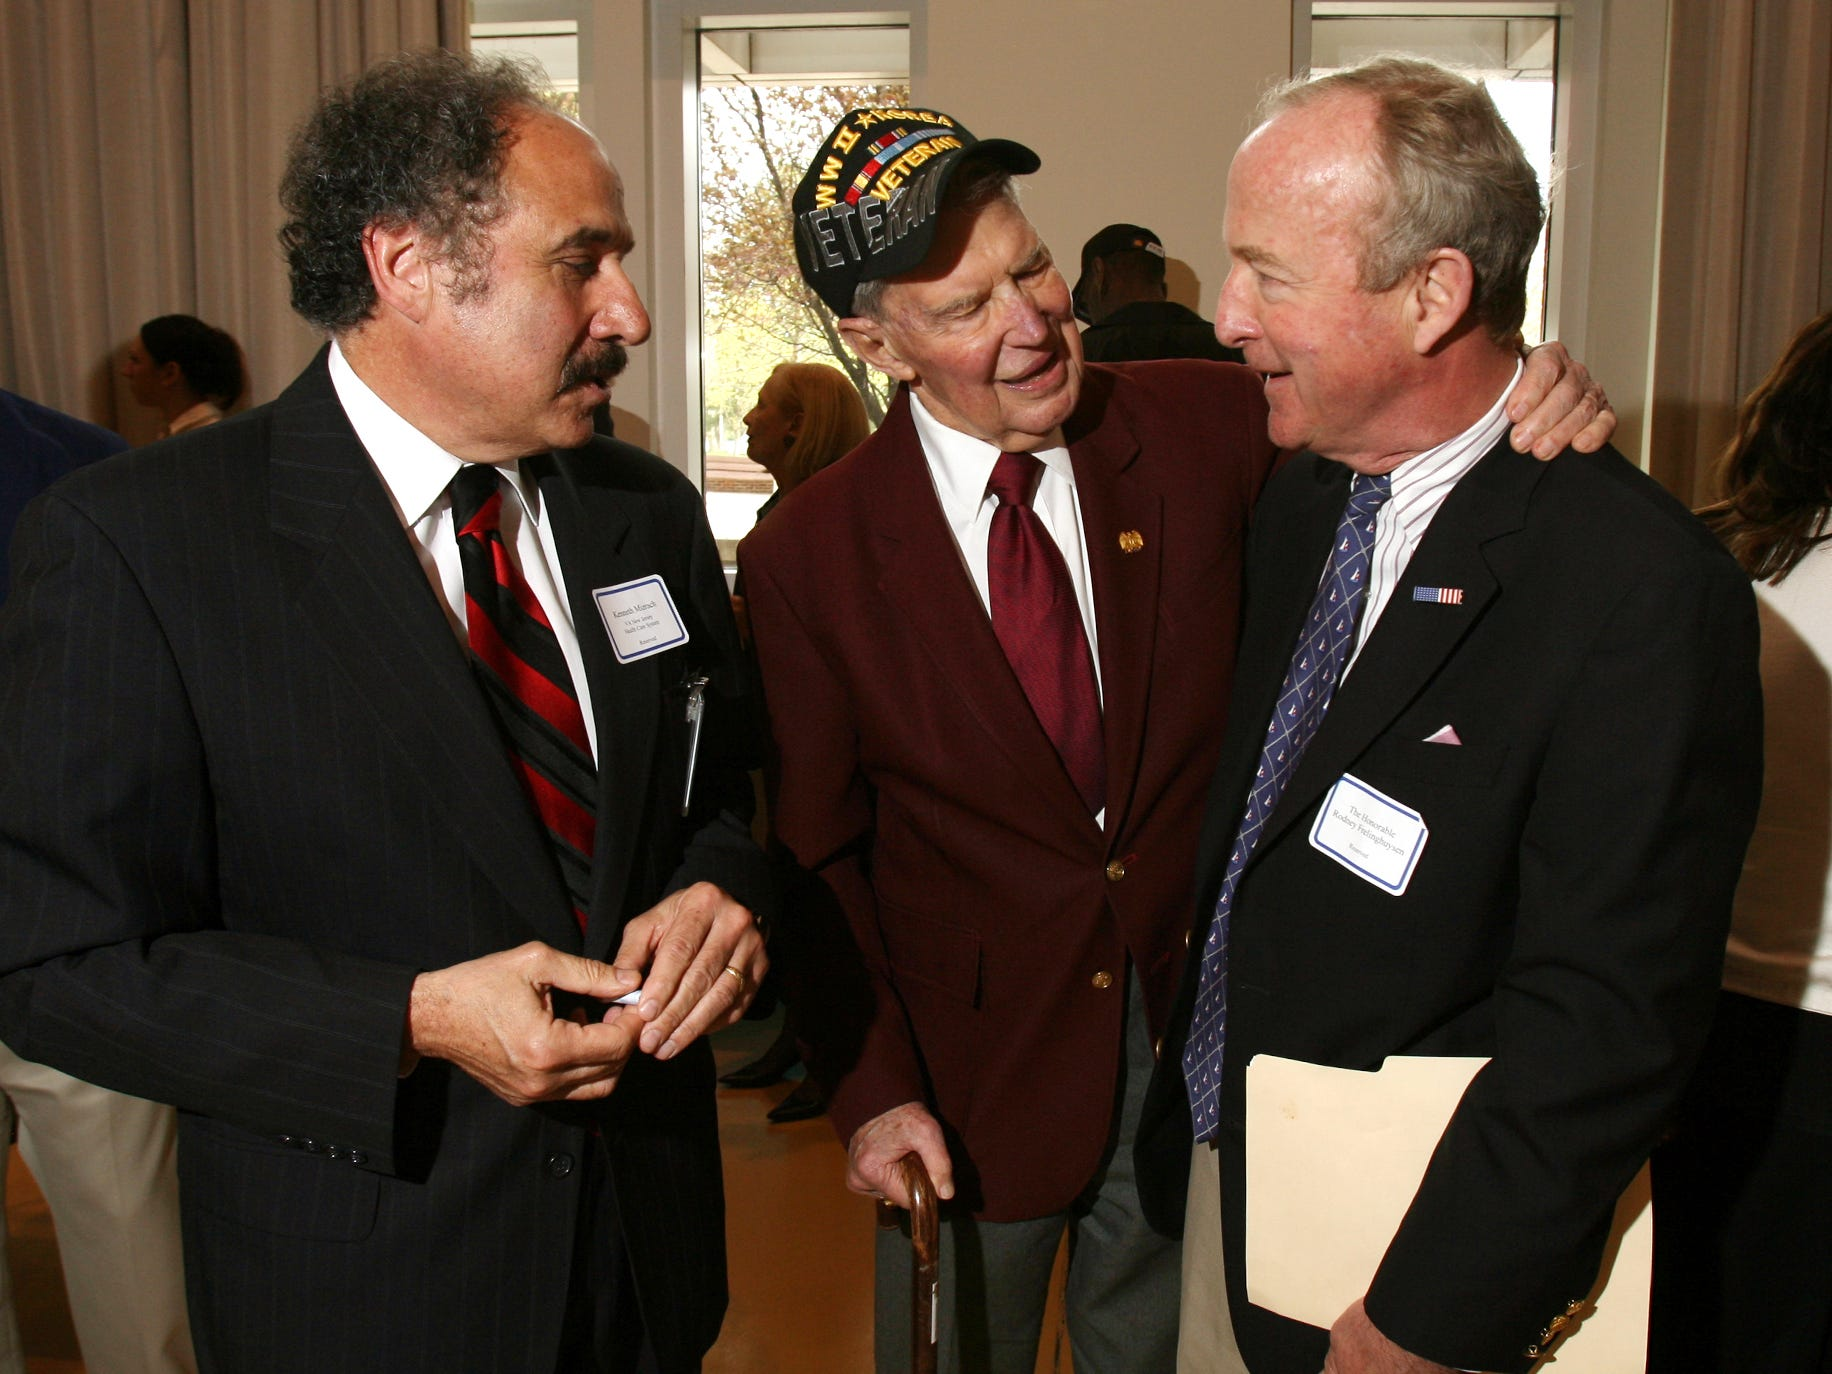 Bernards Twp, April 9, 2010--Bob Tracey, c, of Morristown talks with the Director of VA NJ Health Care System, Kenneth Mizrach, l, and Congressman Rodney Frelinghuysen who officiated at the fifth anniversary of the Hope for Veterans project at the Lyons Veterans Affairs campus.